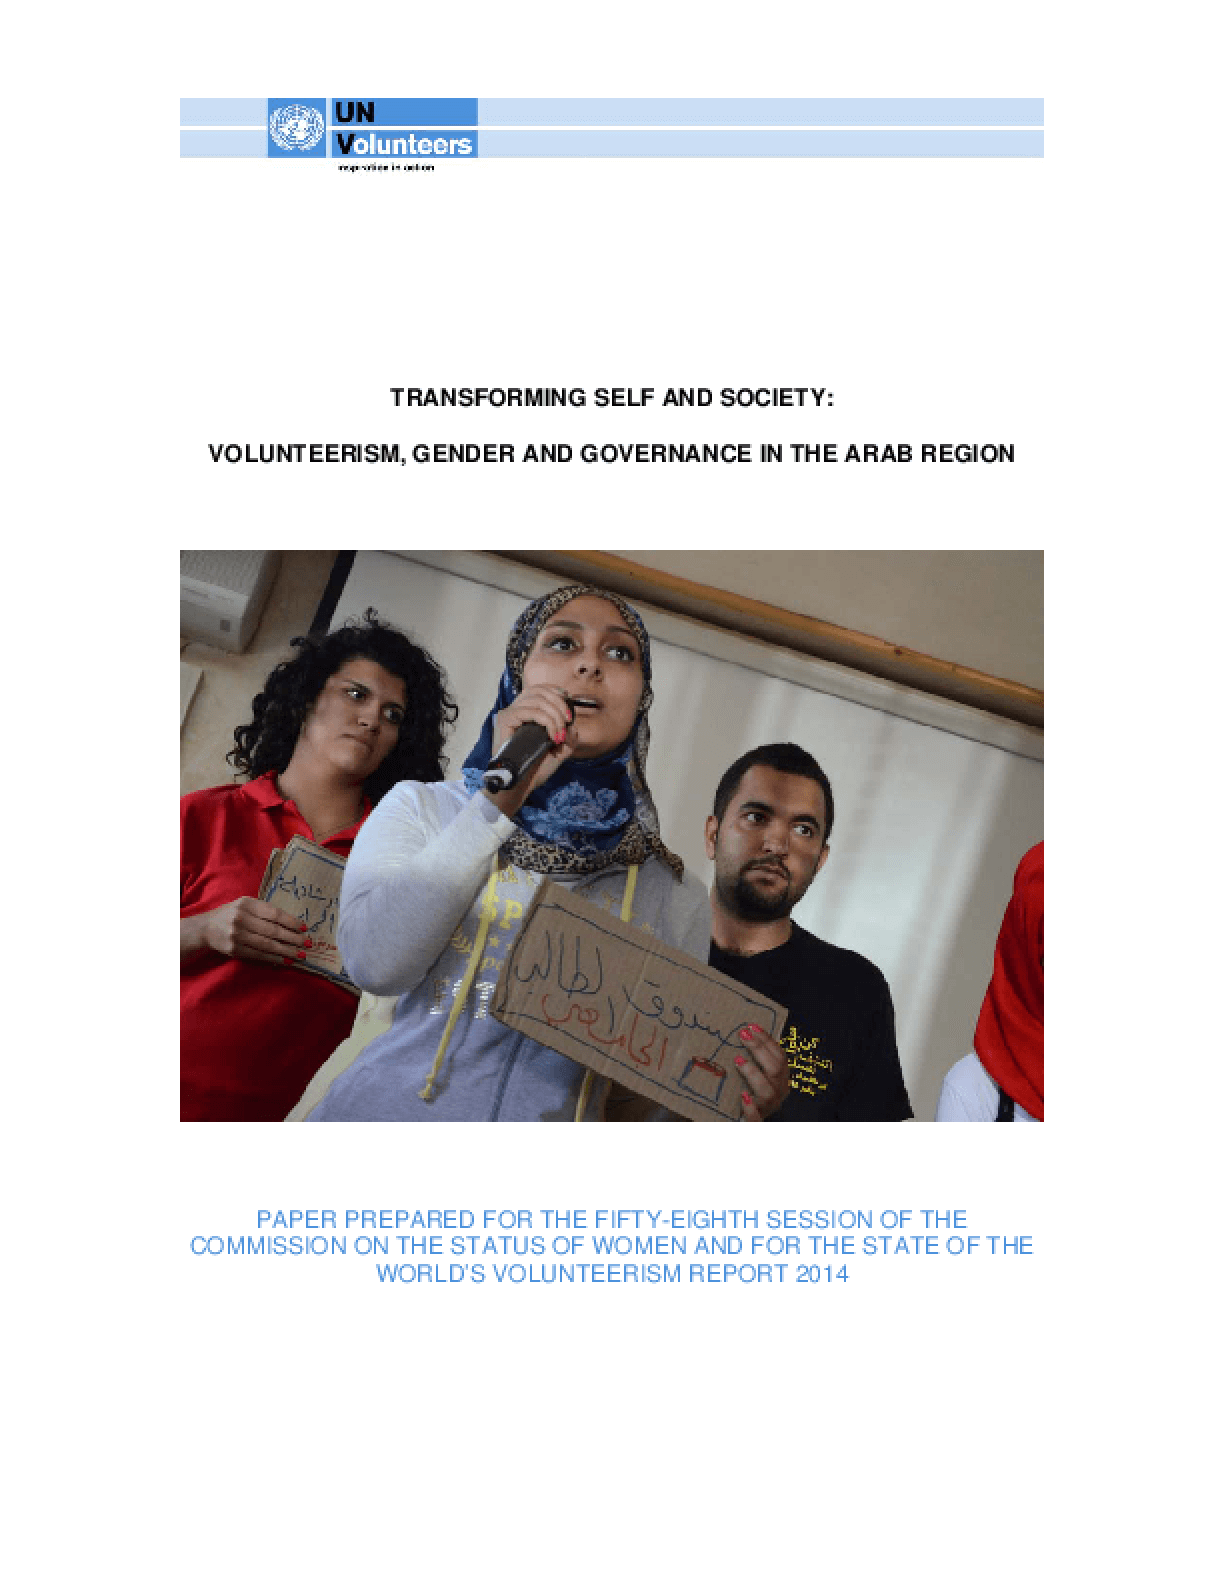 Transforming Self and Society: Volunteerism, Gender and Governance in the Arab Region